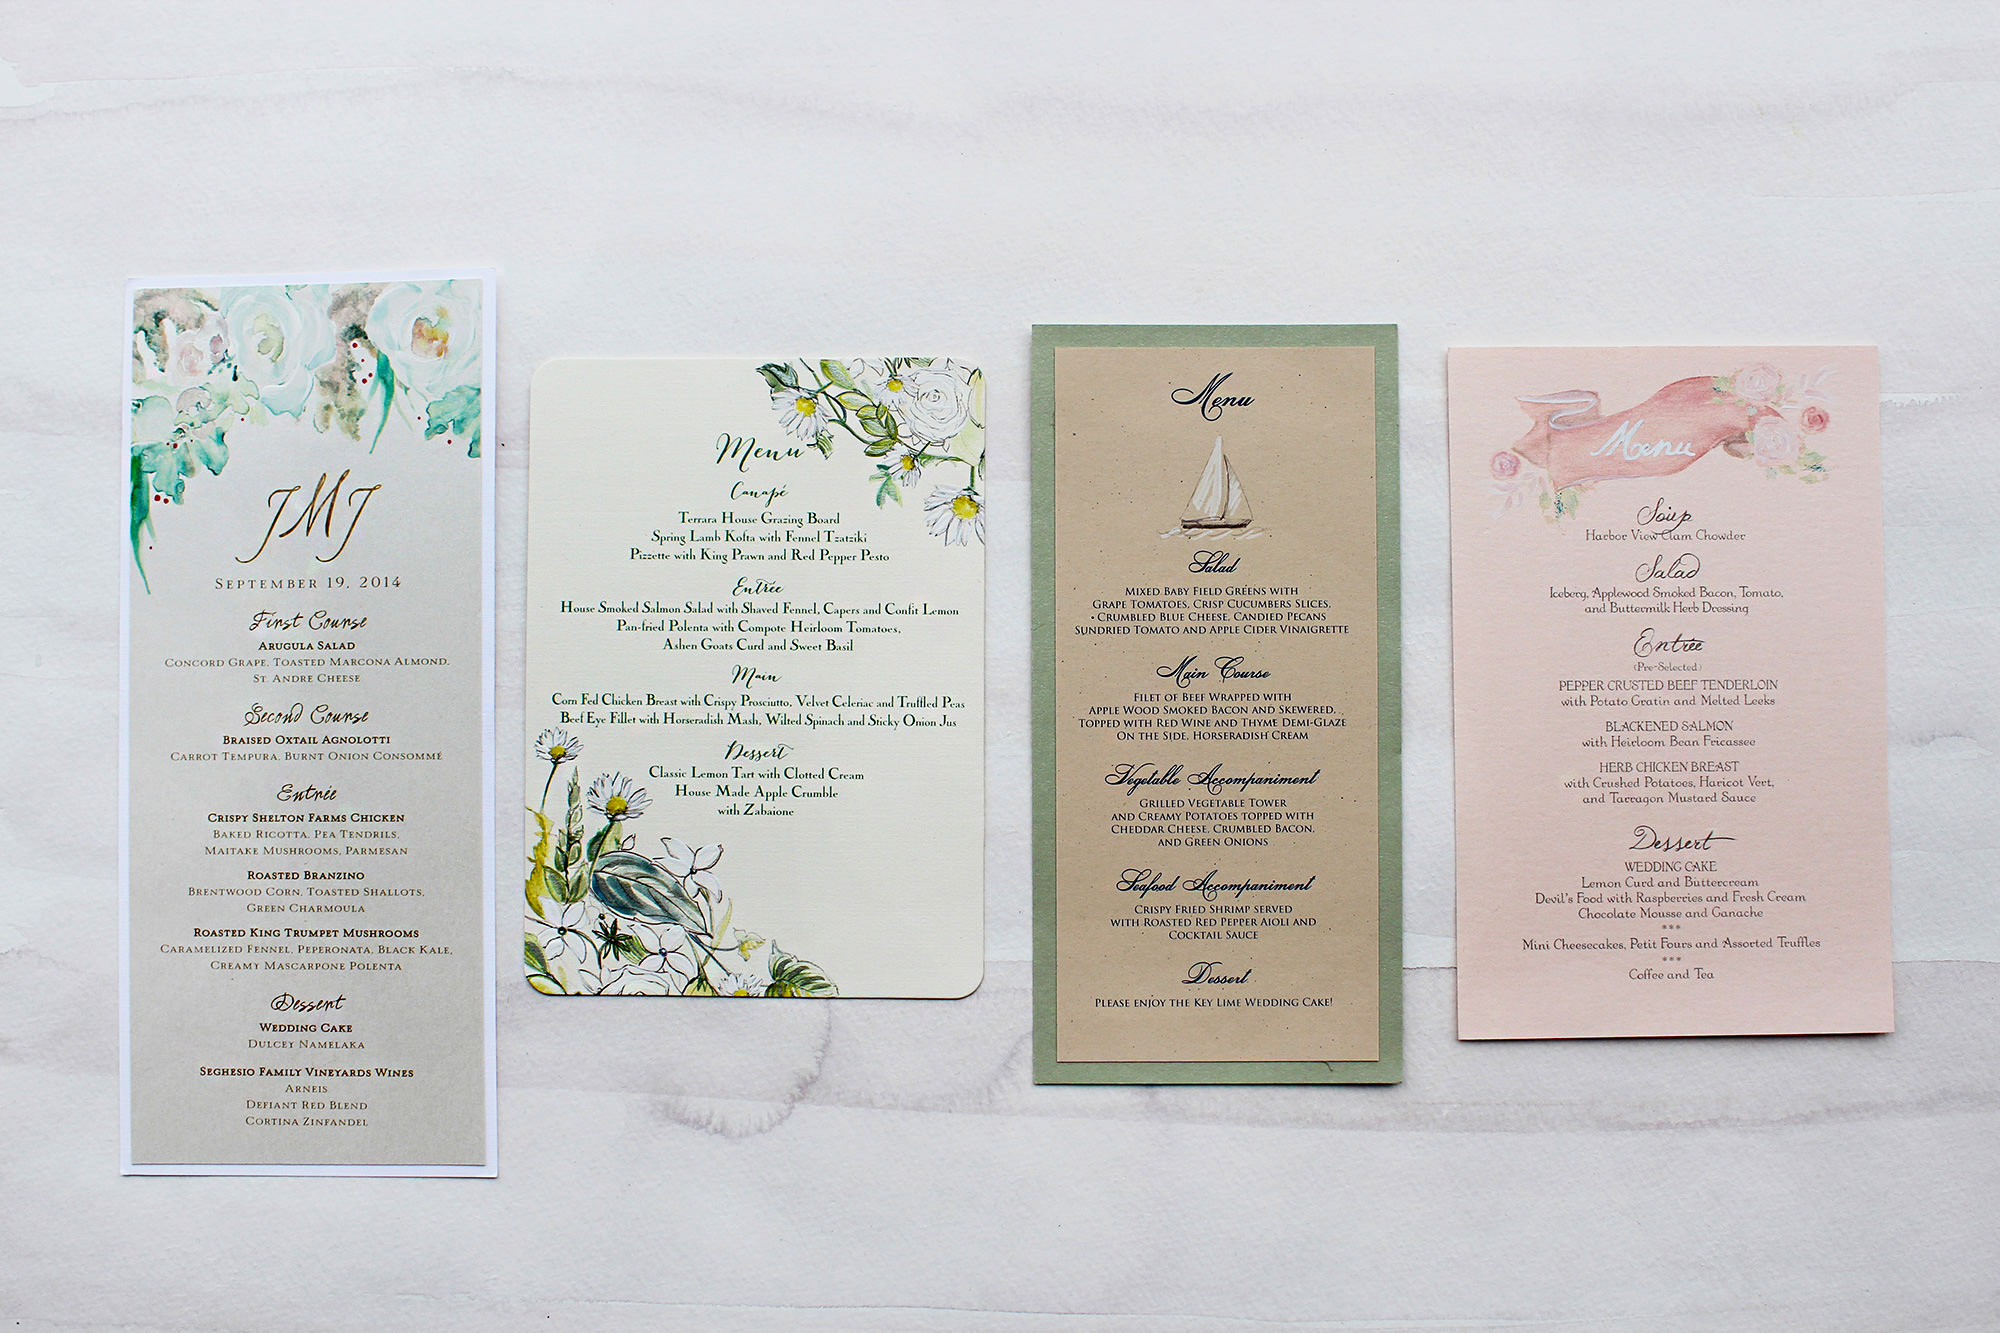 menus wedding menus Consider a menu that becomes a keepsake for guests no material is out of the question Include personal did you know type facts in the design to